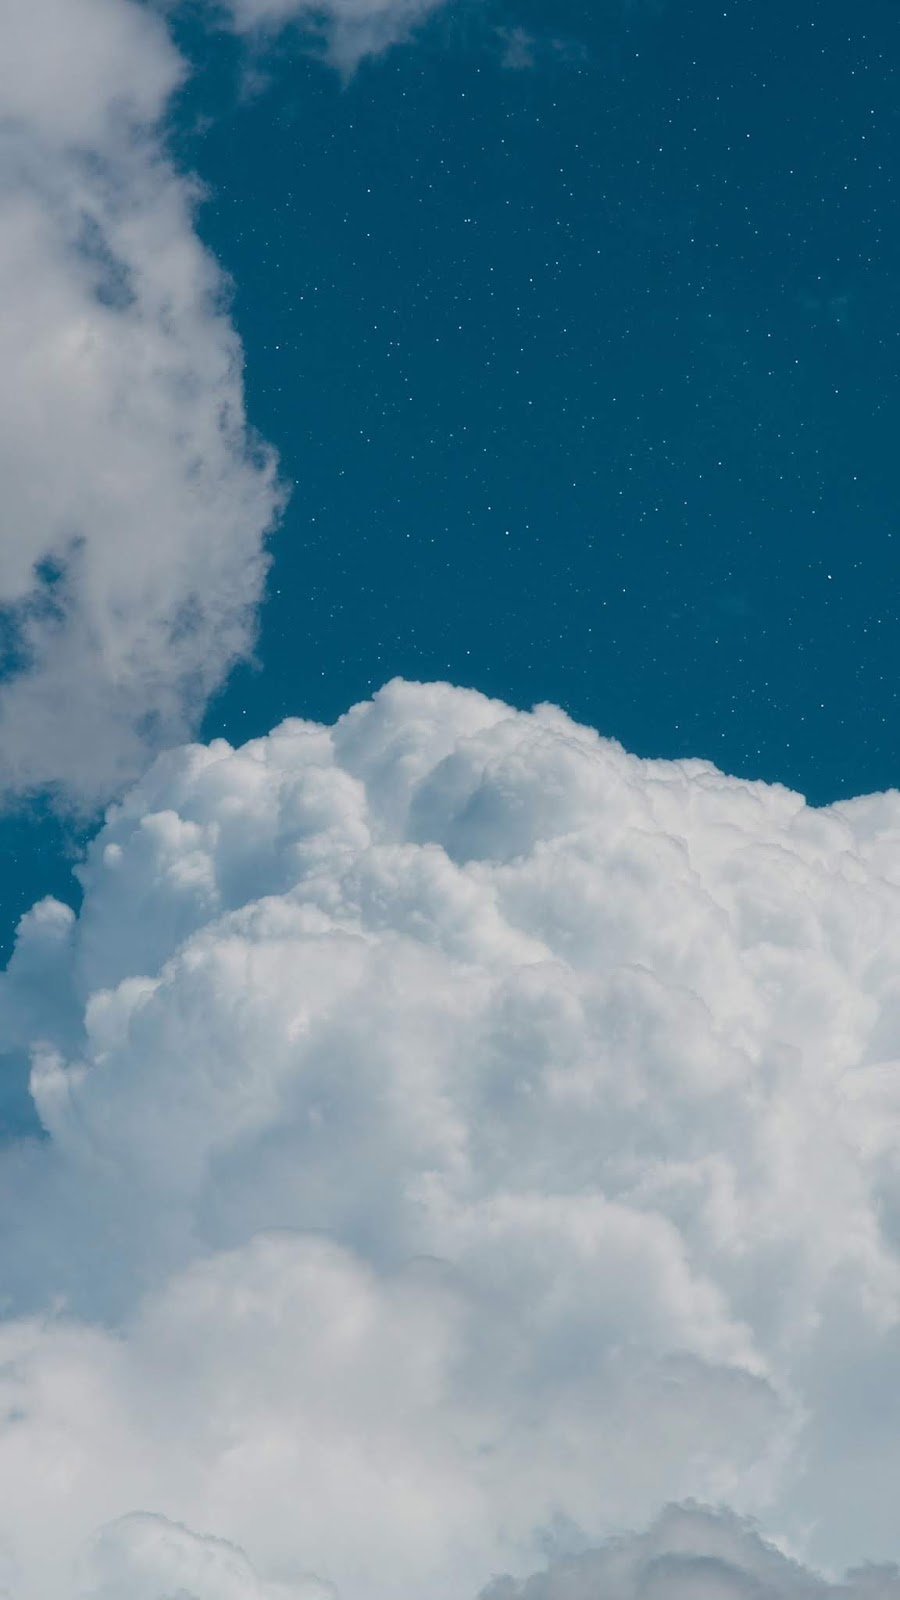 Cloud wallpaper